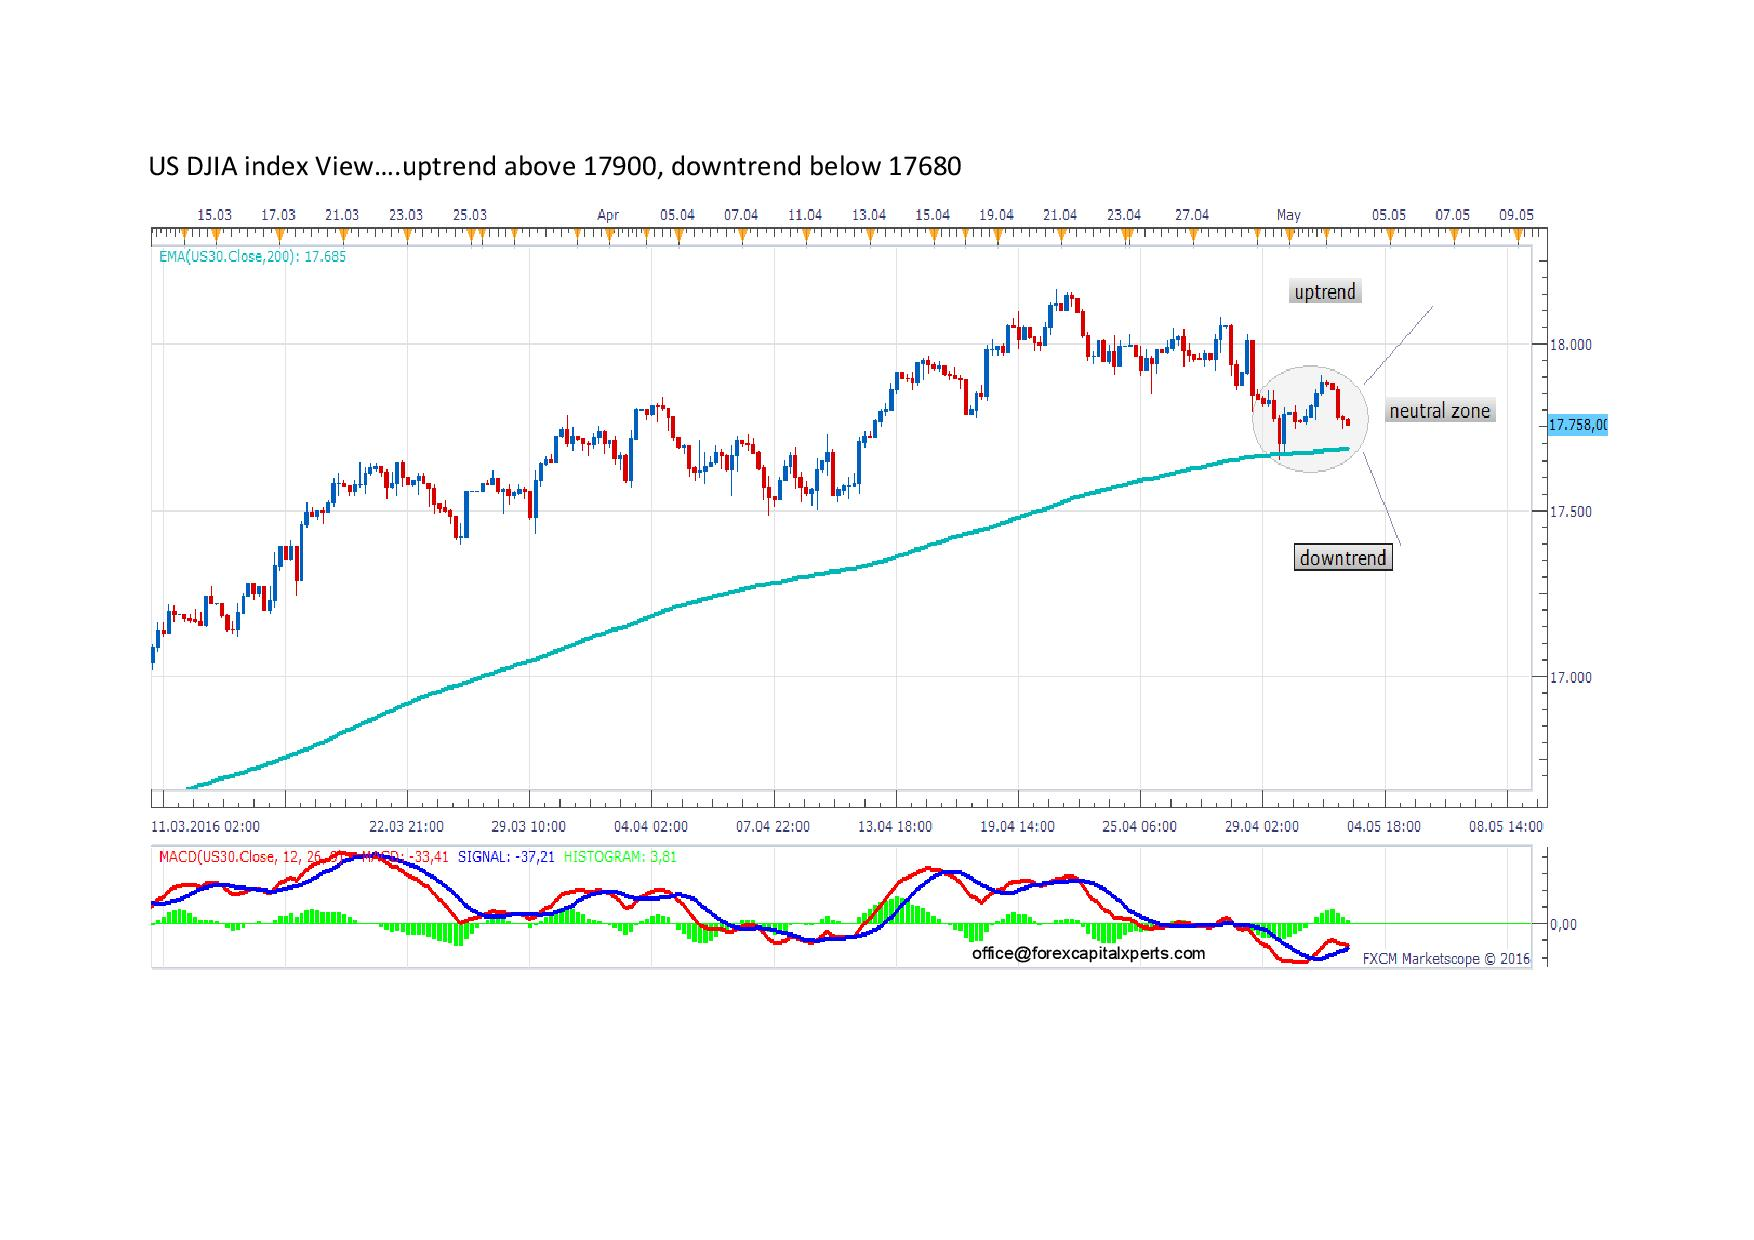 US DJIA index View page 001